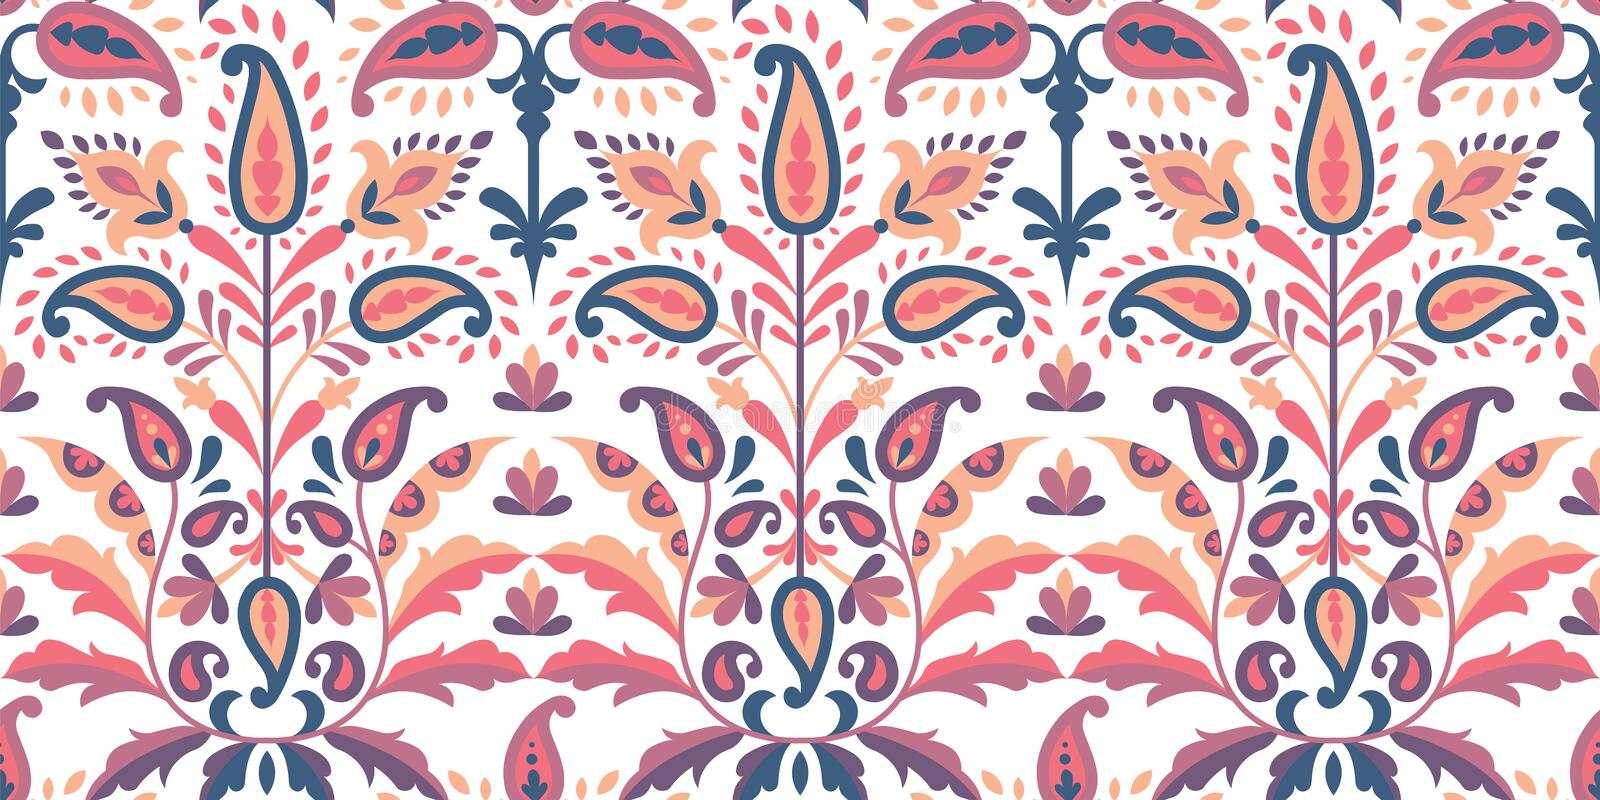 Vector seamless colorful pattern in paisley style. Vintage decorative background. Hand drawn ornament. Oriental bohemian vector illustration